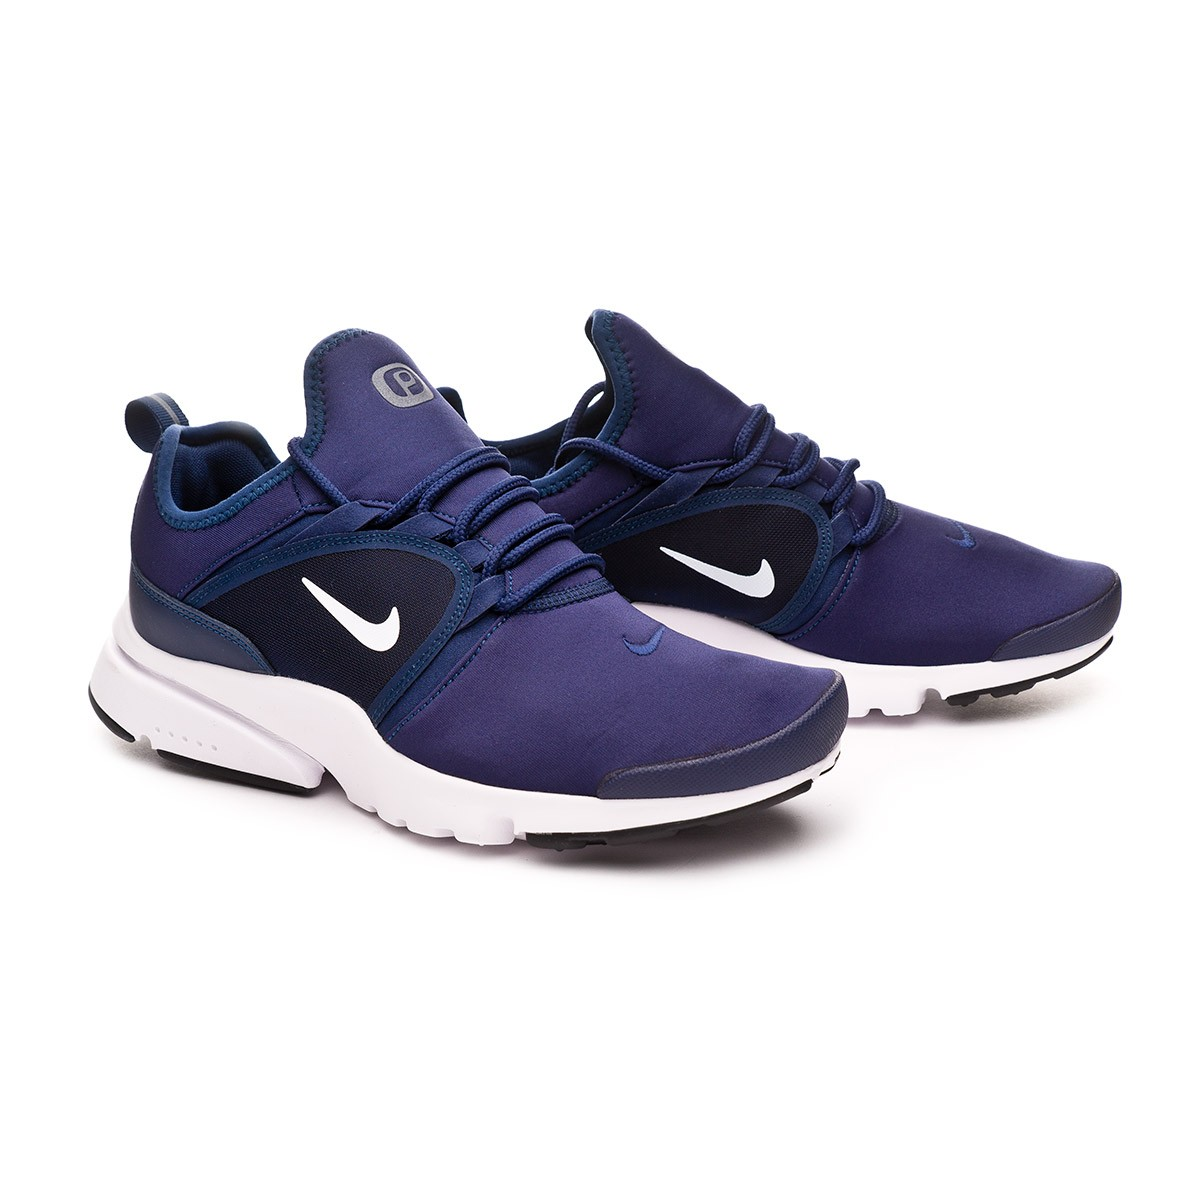 various colors 969e5 0d152 Nike Presto Fly World 2019 Trainers